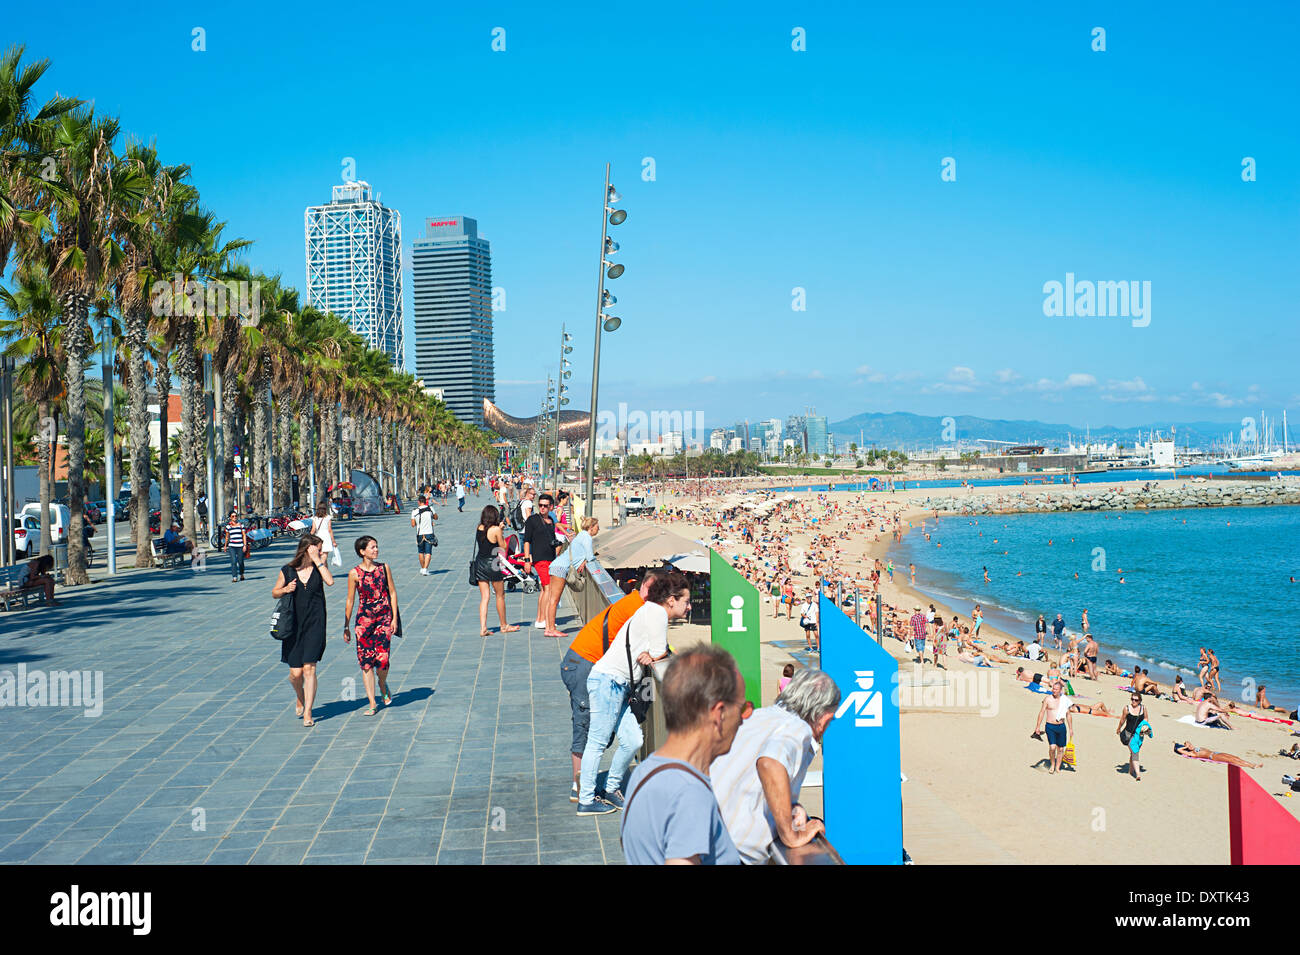 Unidentified people at Barcelona city beach. 400 meters long, it is one of 10 best urban beaches of the world. - Stock Image